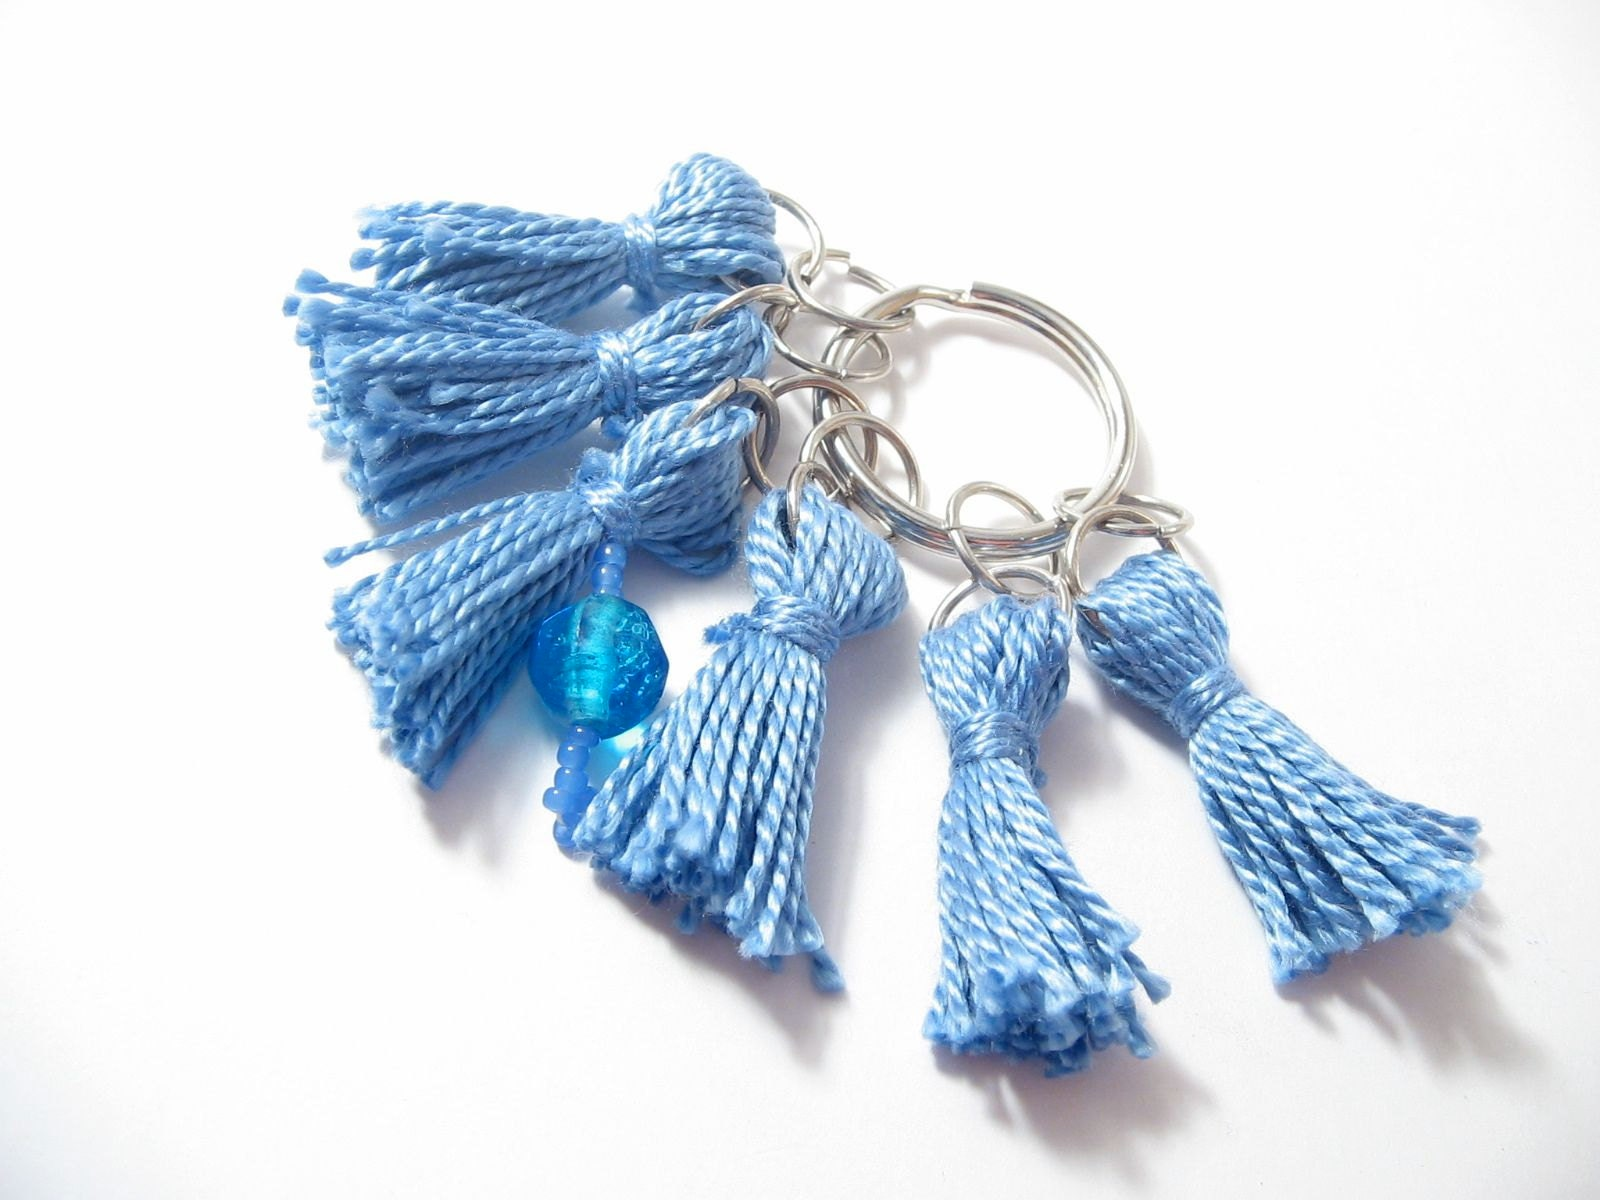 Light blue stitch marker set (with beaded row marker) from Lizbeths Garden